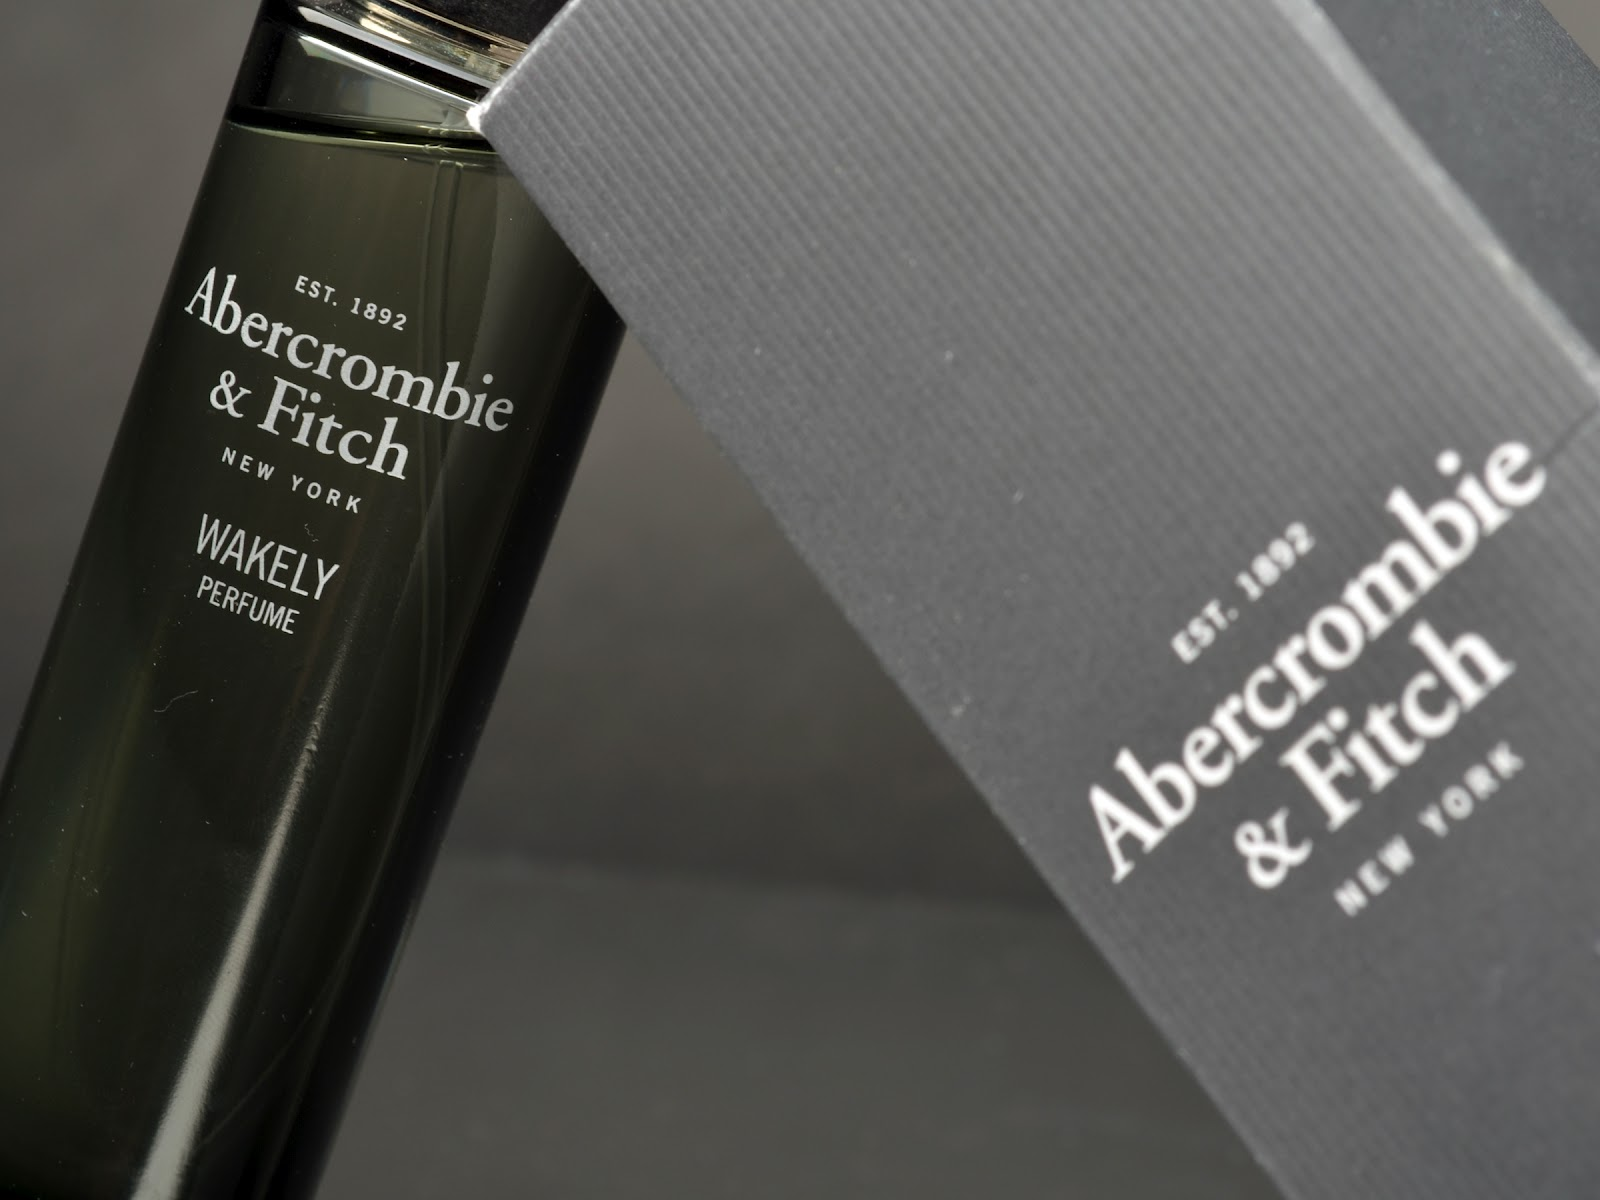 Abercrombie & fitch wakely perfume